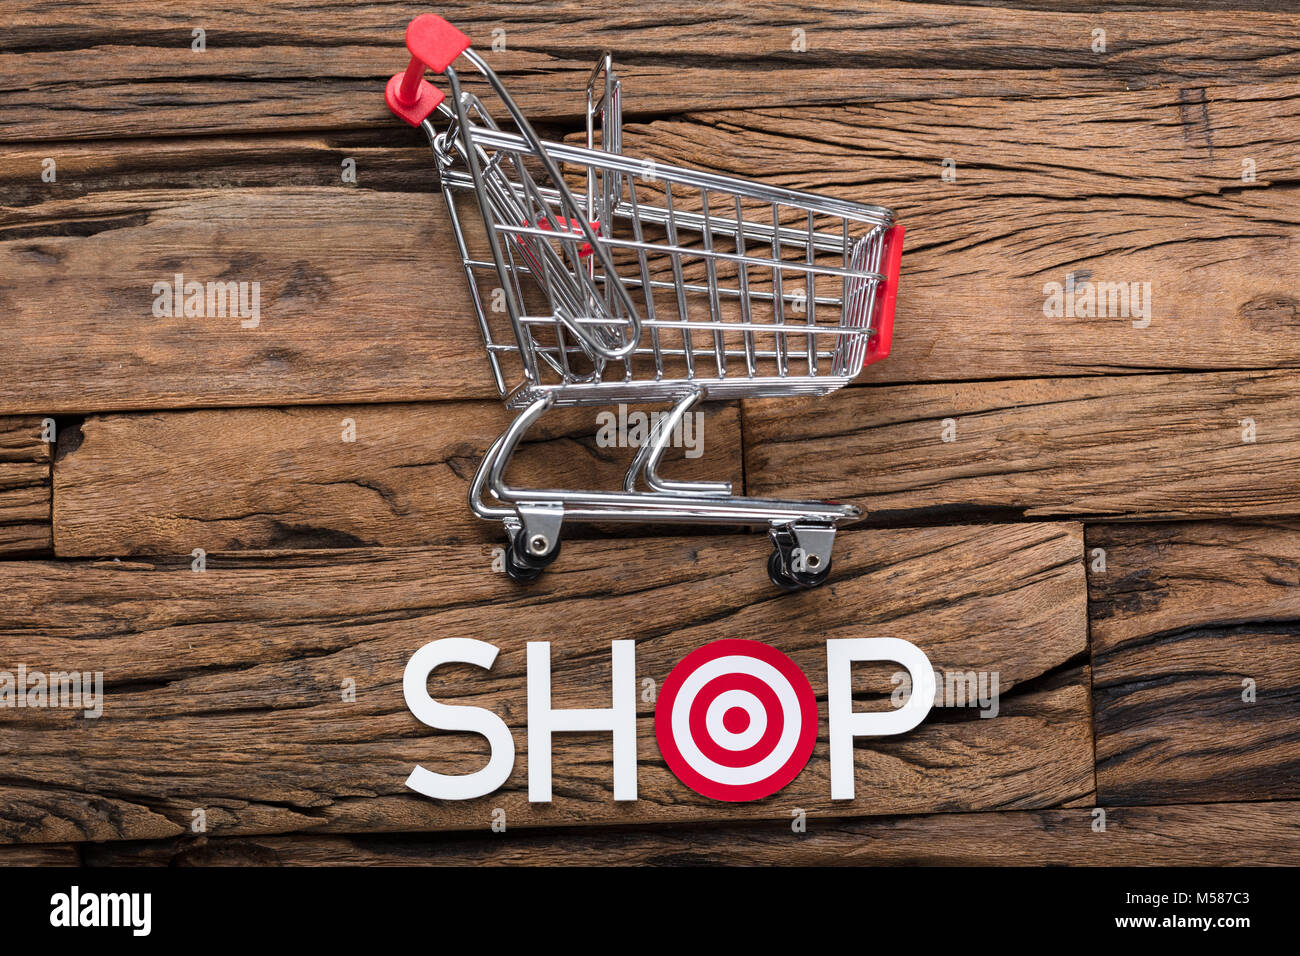 High angle view of shop text with dartboard on wooden table - Stock Image